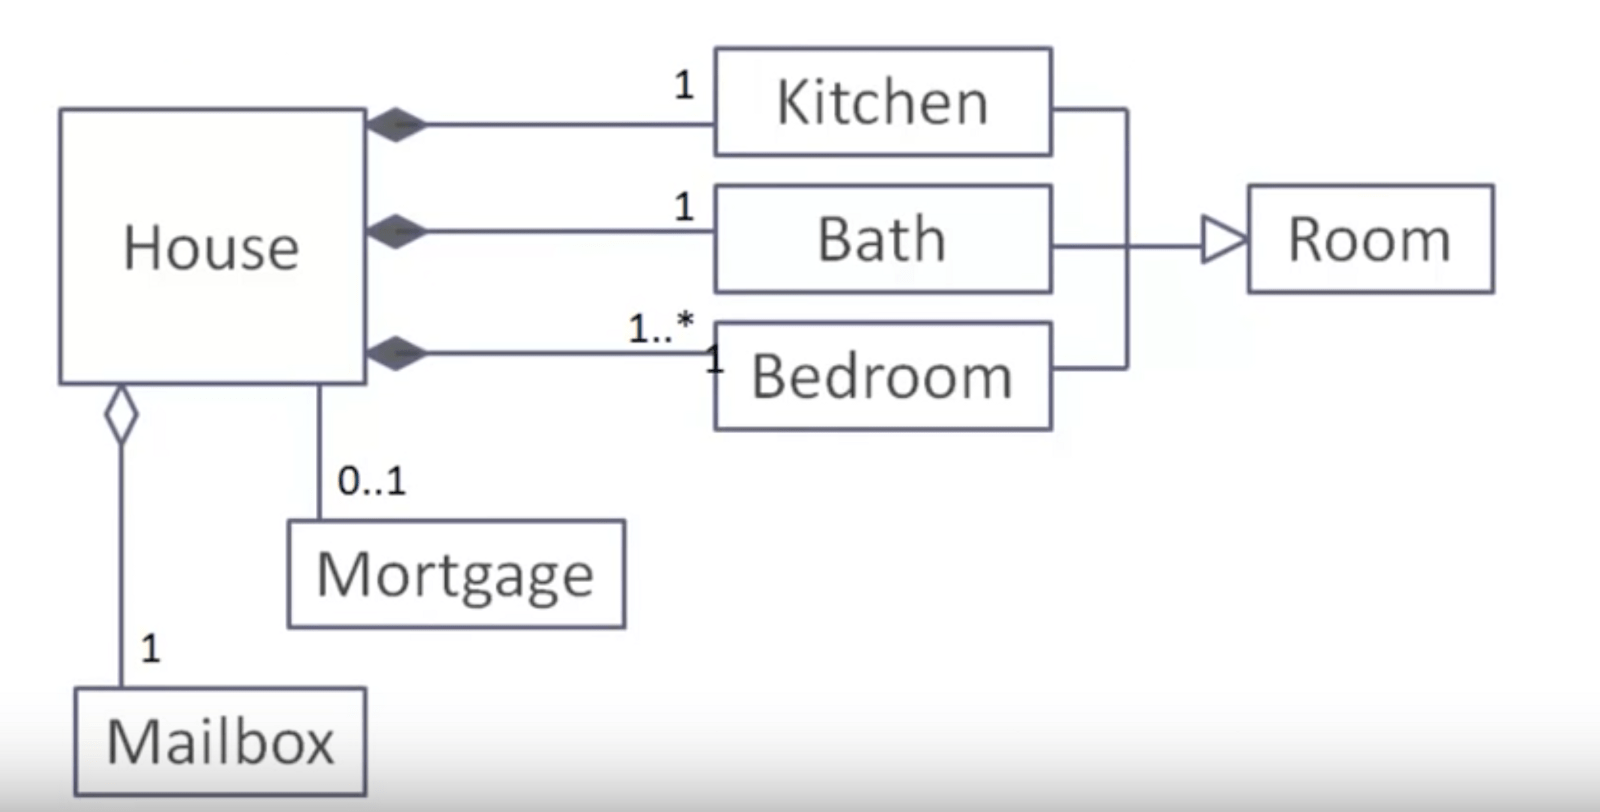 how to design uml diagrams simple atom diagram class tutorial step by salma medium the above shows that a house has exactly one kitchen bath atleast bedroom can have many mailbox